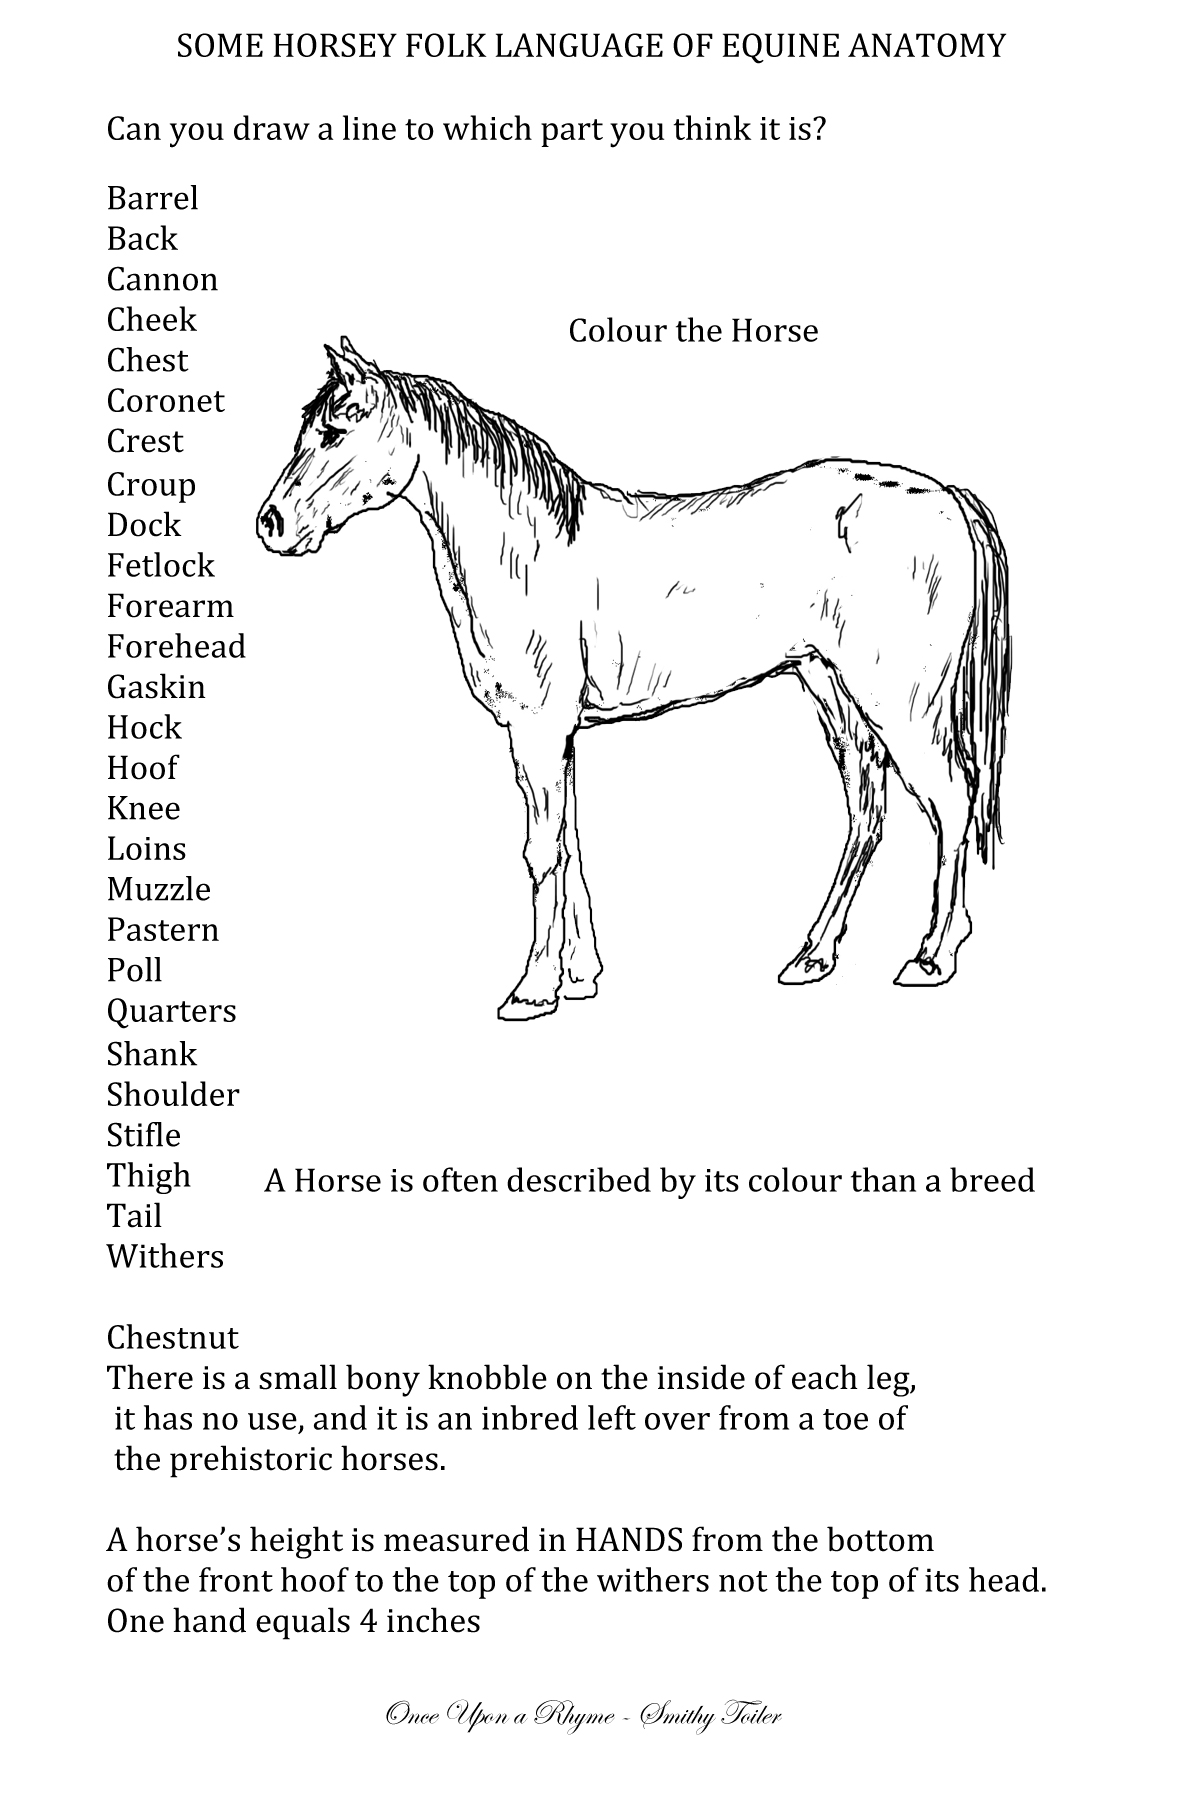 Horse muzzle anatomy 8331103 - follow4more.info